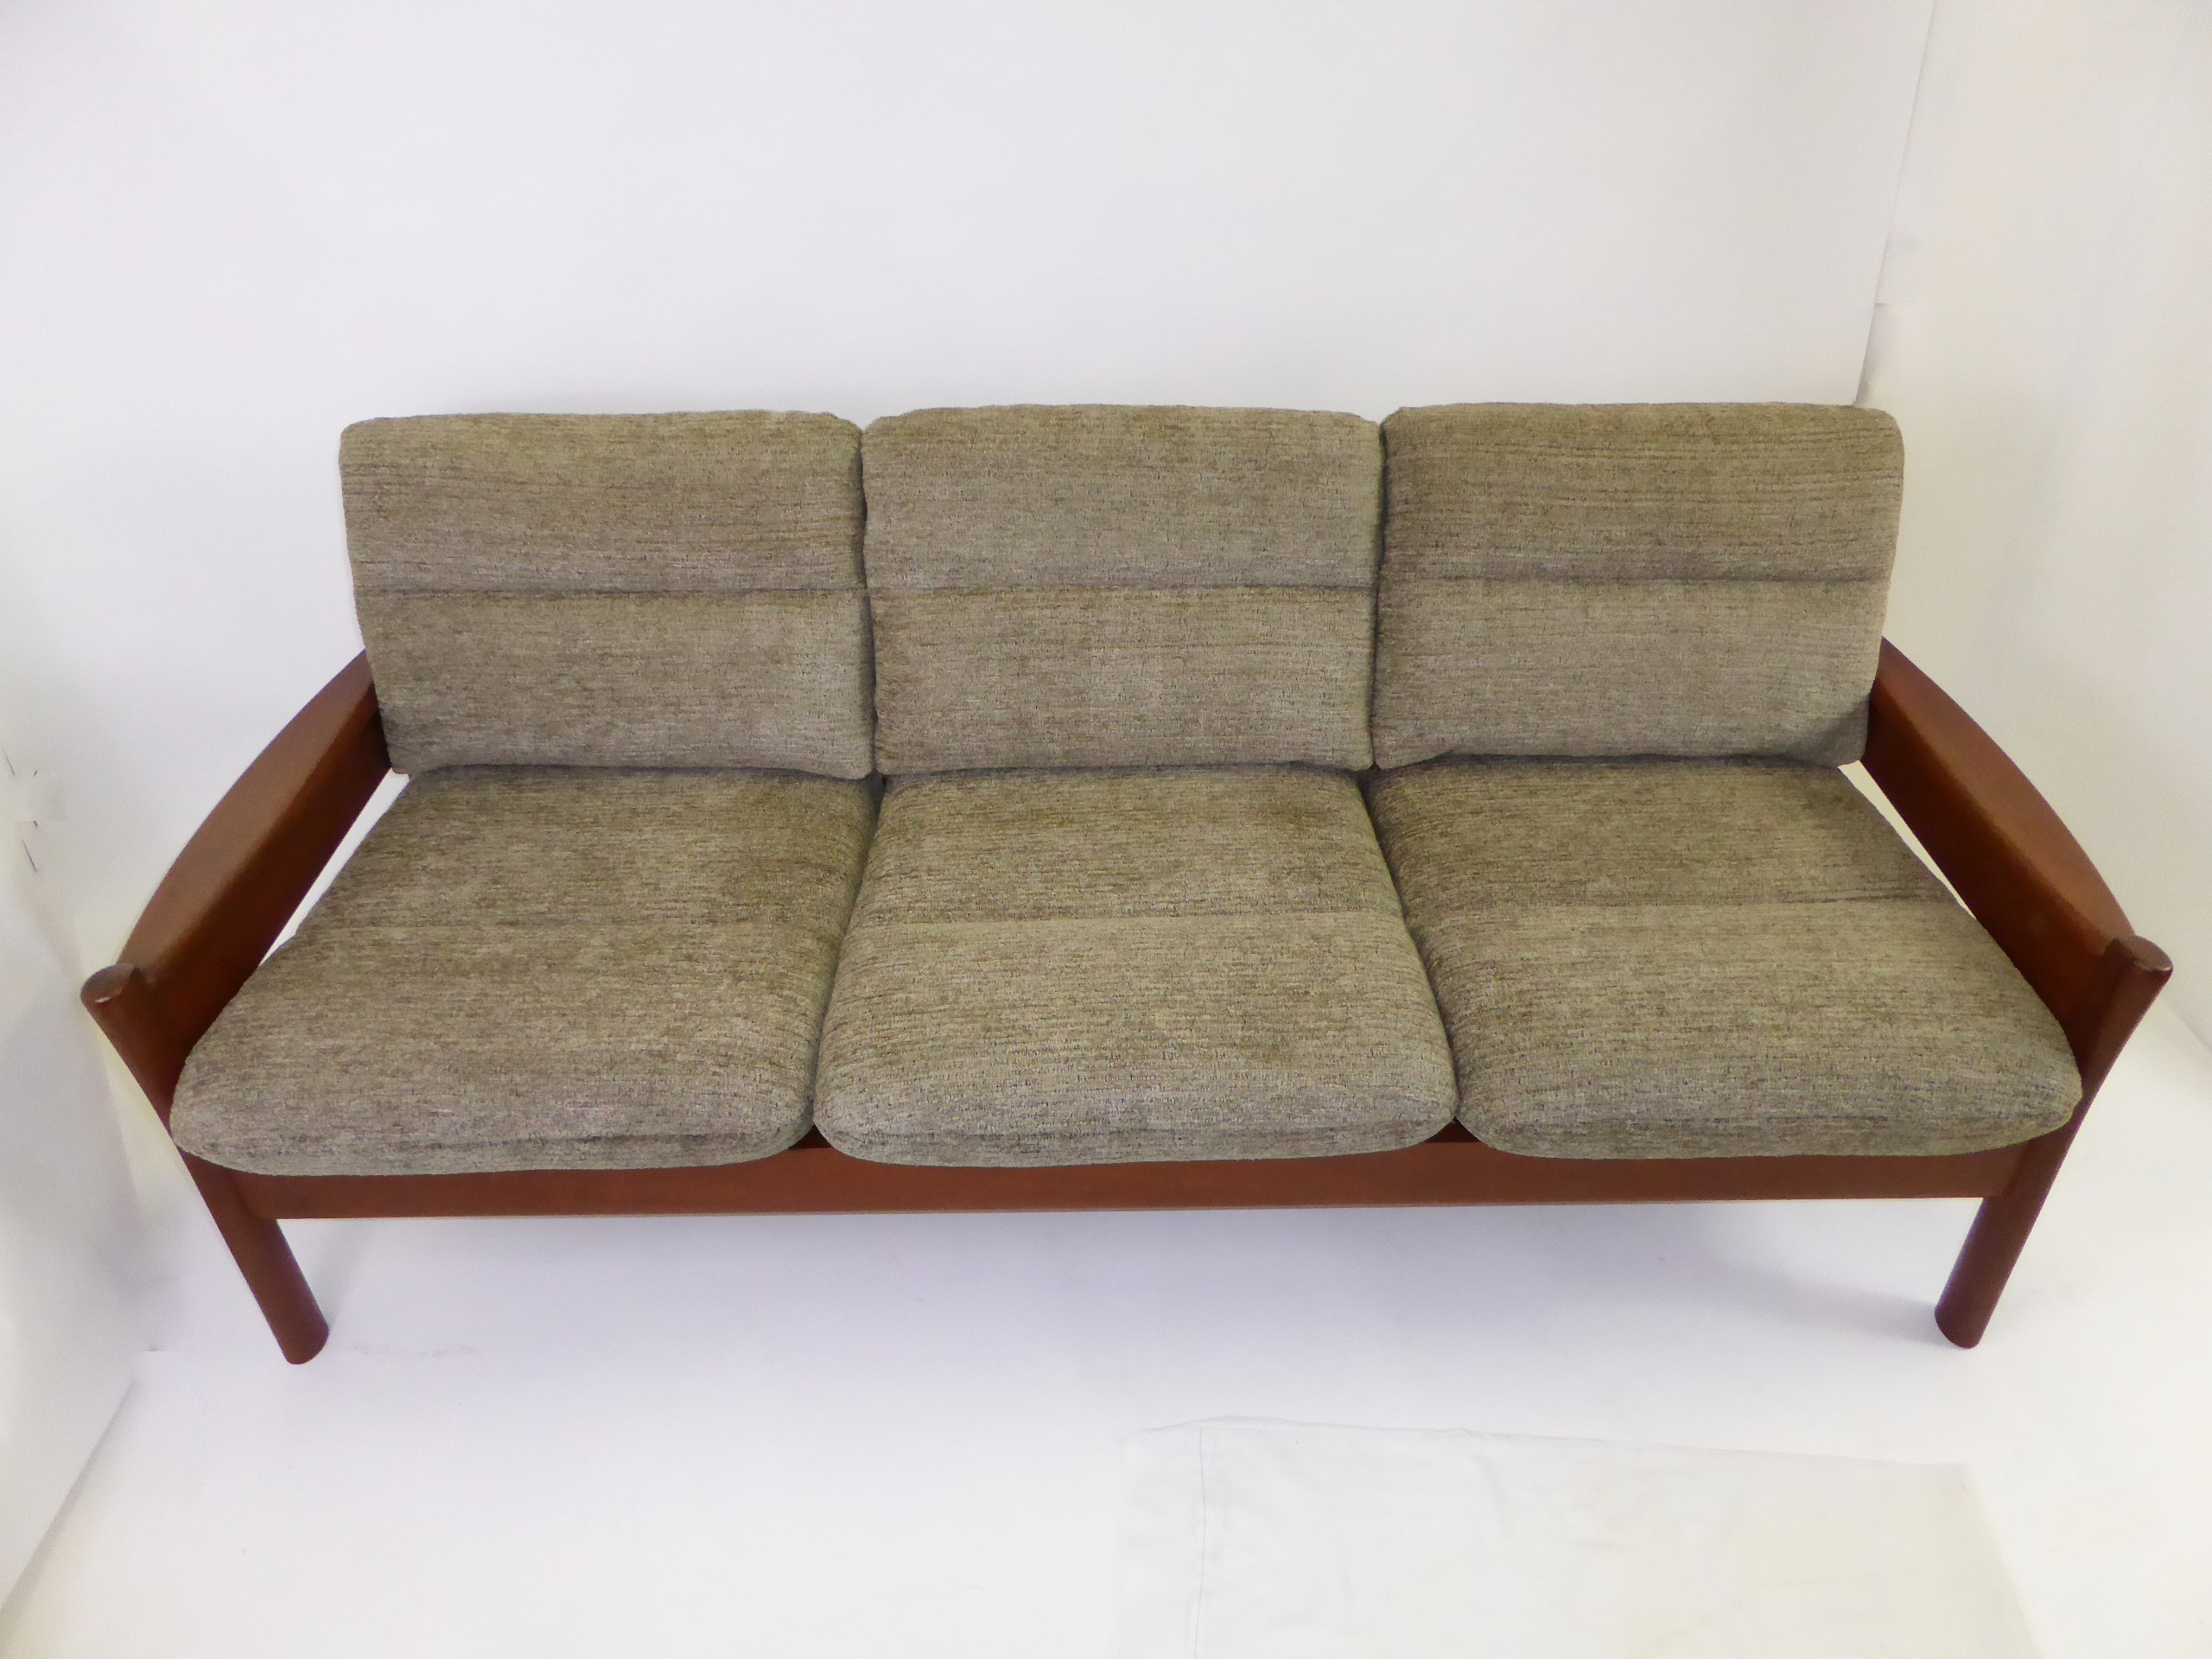 Fine Danish Modern 1960s Dyrlund Of Denmark Solid Teak Sofa With Fitted  Cushions In New Woven